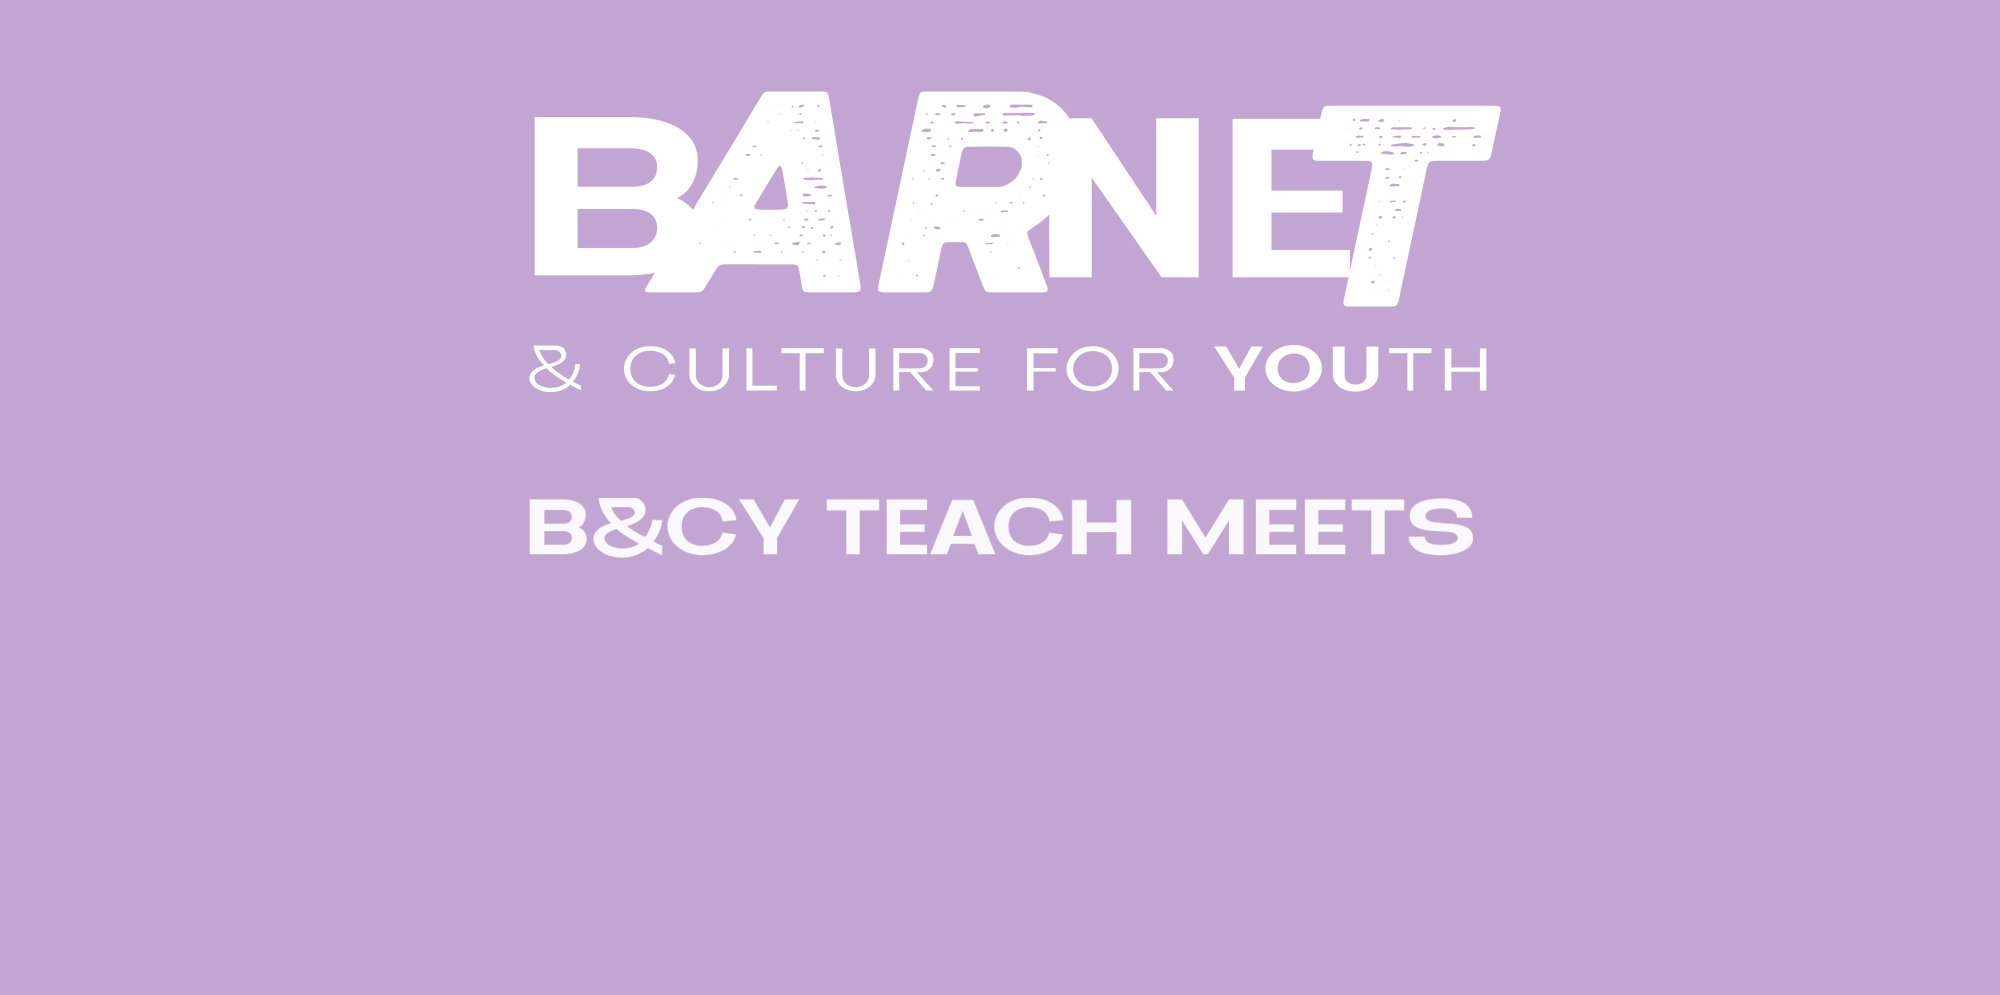 A lilac background with the Barnet & Culture for Youth logo in white and B&CY Teach Meets written in white